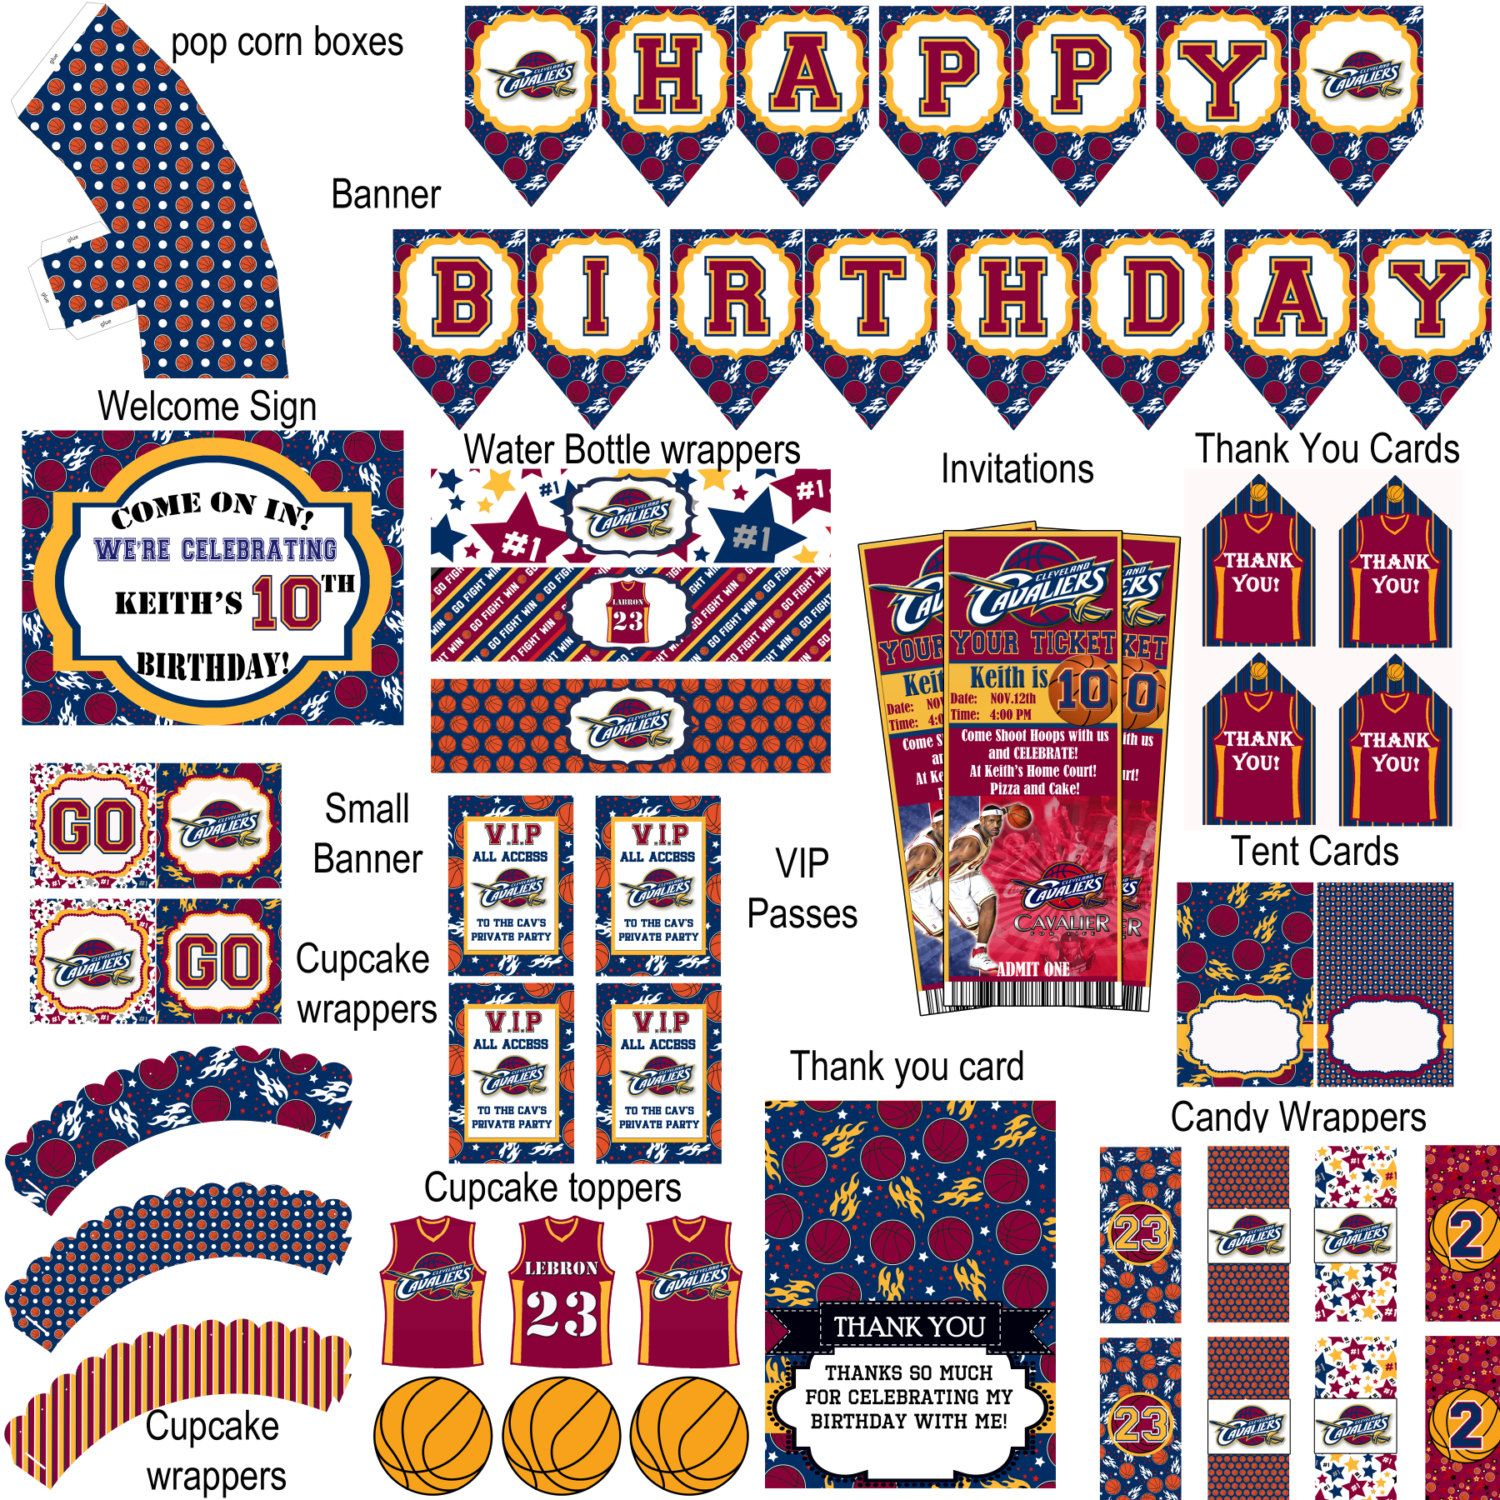 photo about Cavs Schedule Printable identify Cleveland Cavaliers basketball birthday occasion as a result of